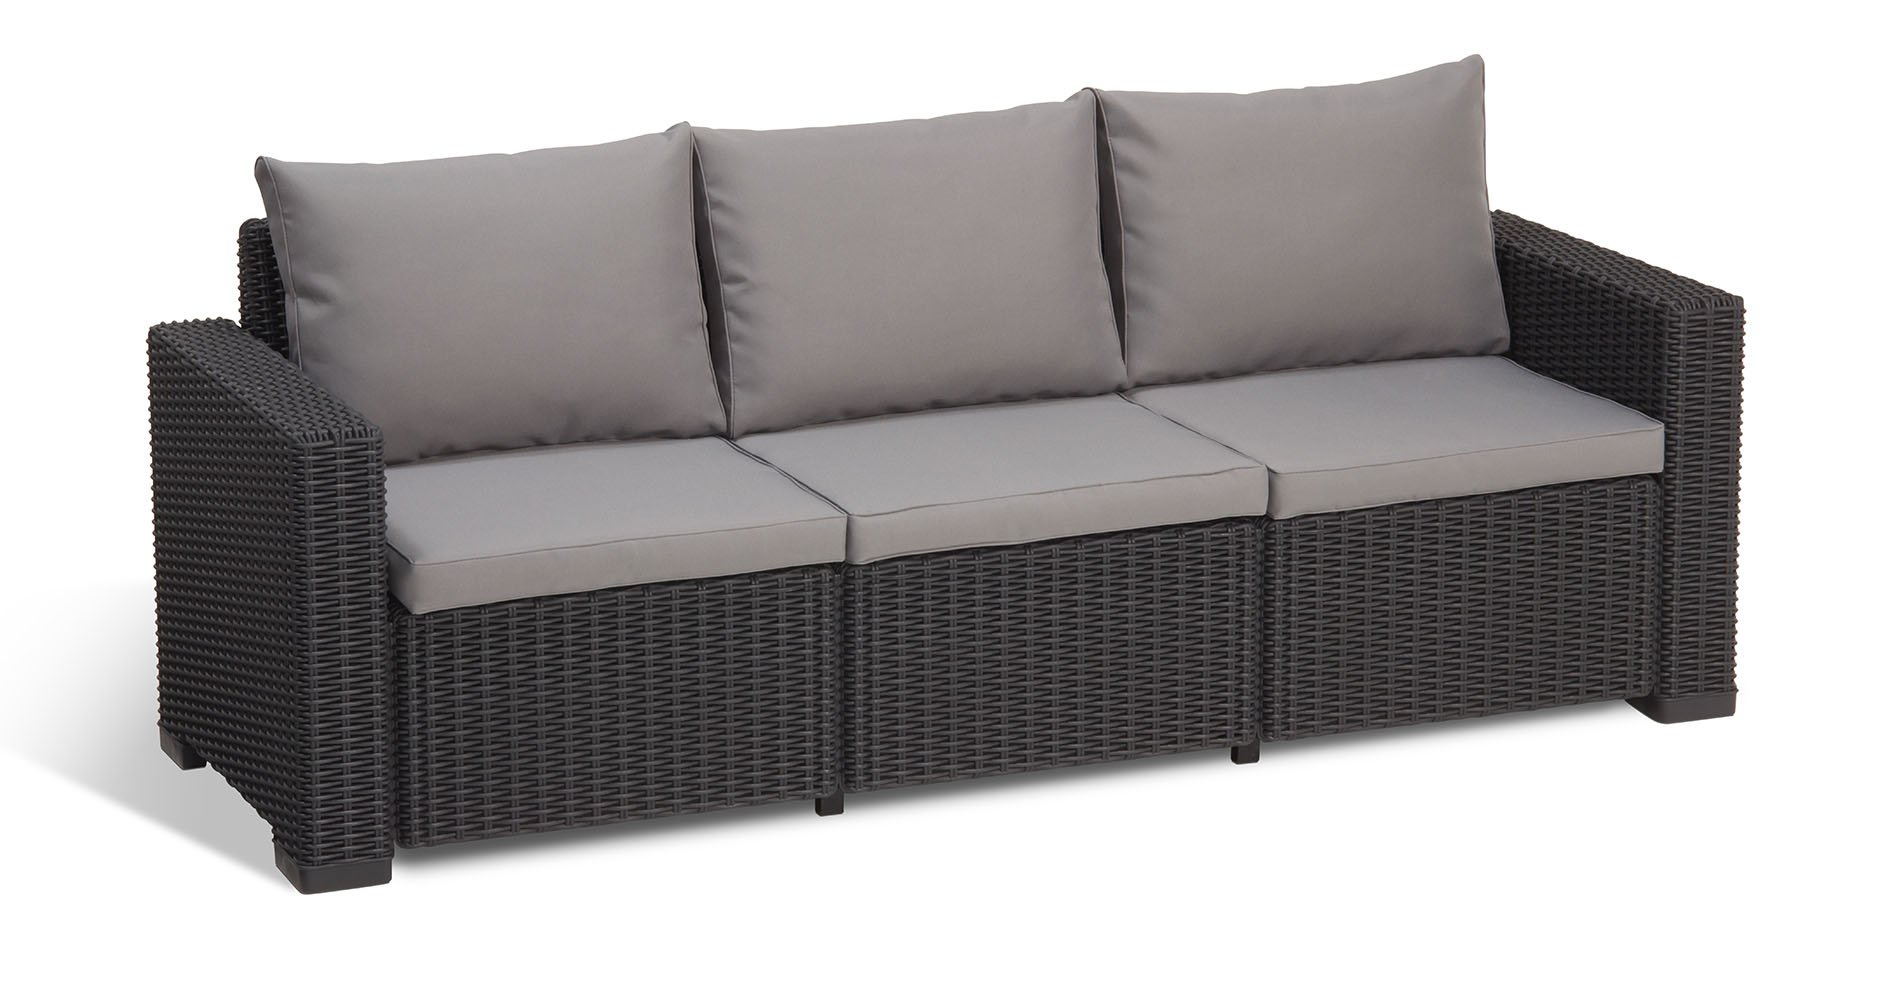 Keter California 3-Seater Seating Patio Sofa with Cushions in a Resin Plastic Wicker Pattern, Graphite/Cool Grey by Keter